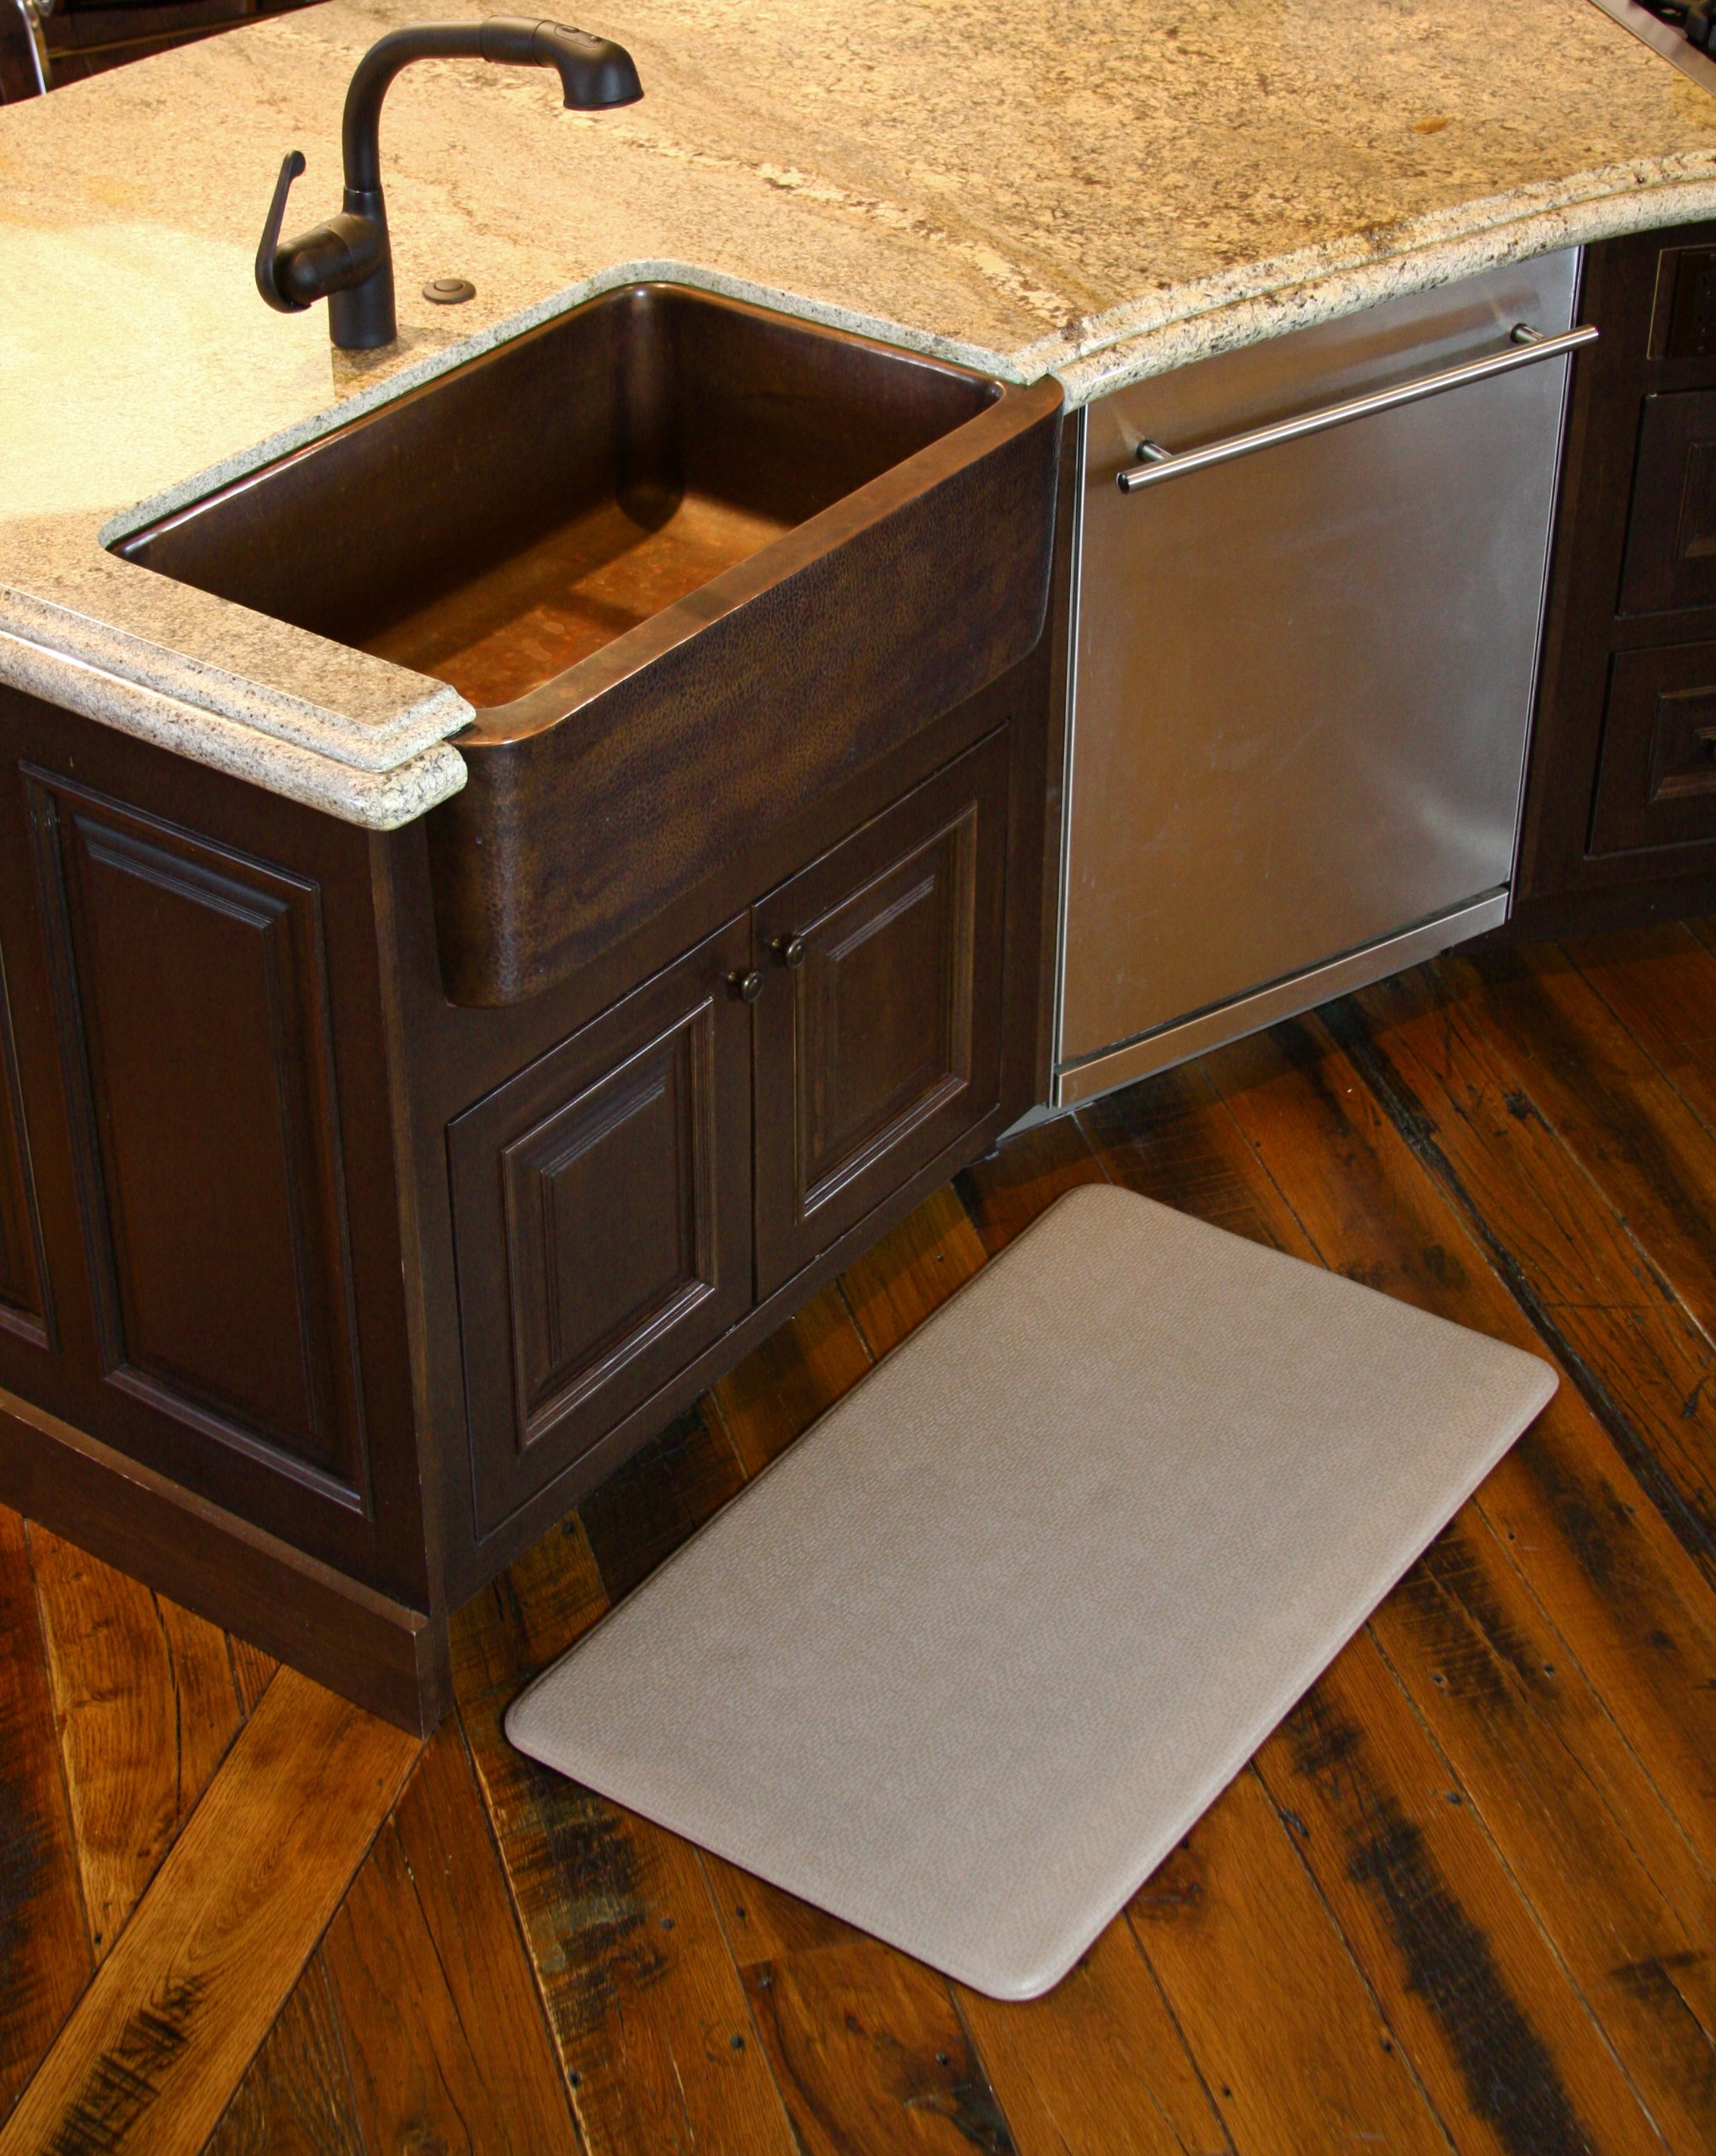 Imprint Cumulus9 Kitchen Mat Nantucket Series Island Area Runner  26 in. x 72 in. x 5/8 in. Mocha by Imprint (Image #7)